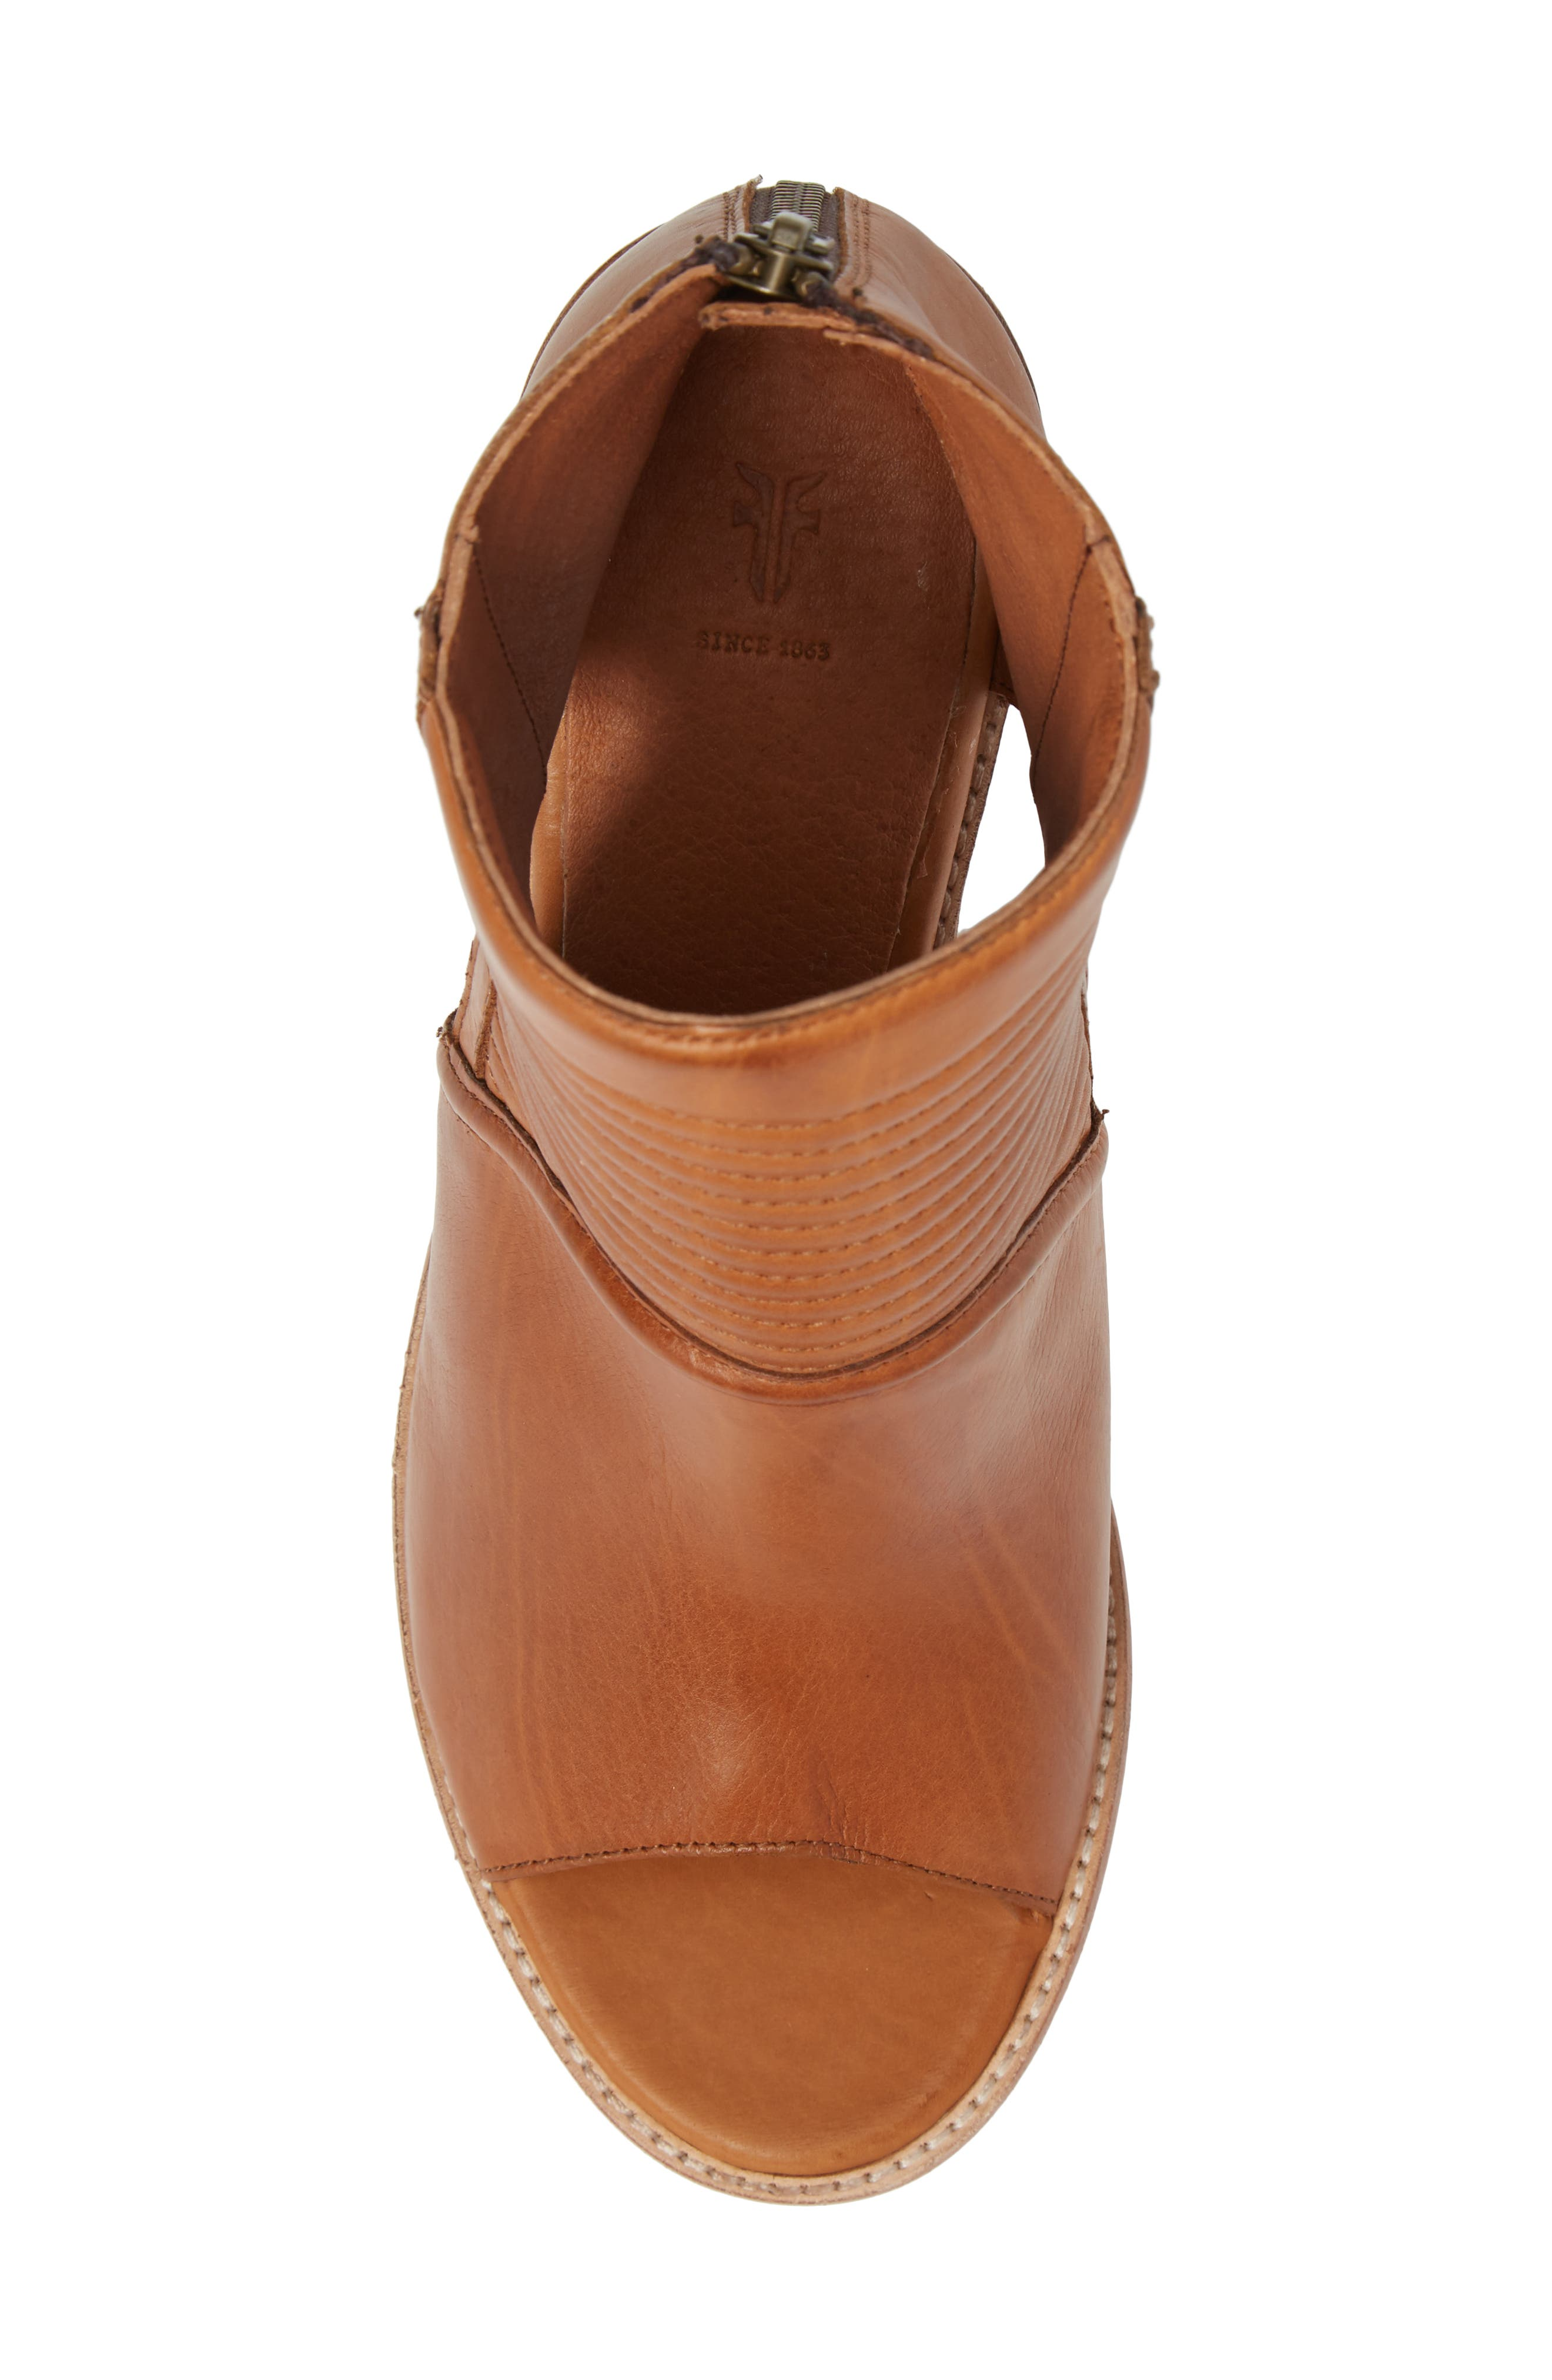 Bailey Quilted Peep Toe Bootie,                             Alternate thumbnail 5, color,                             Cognac